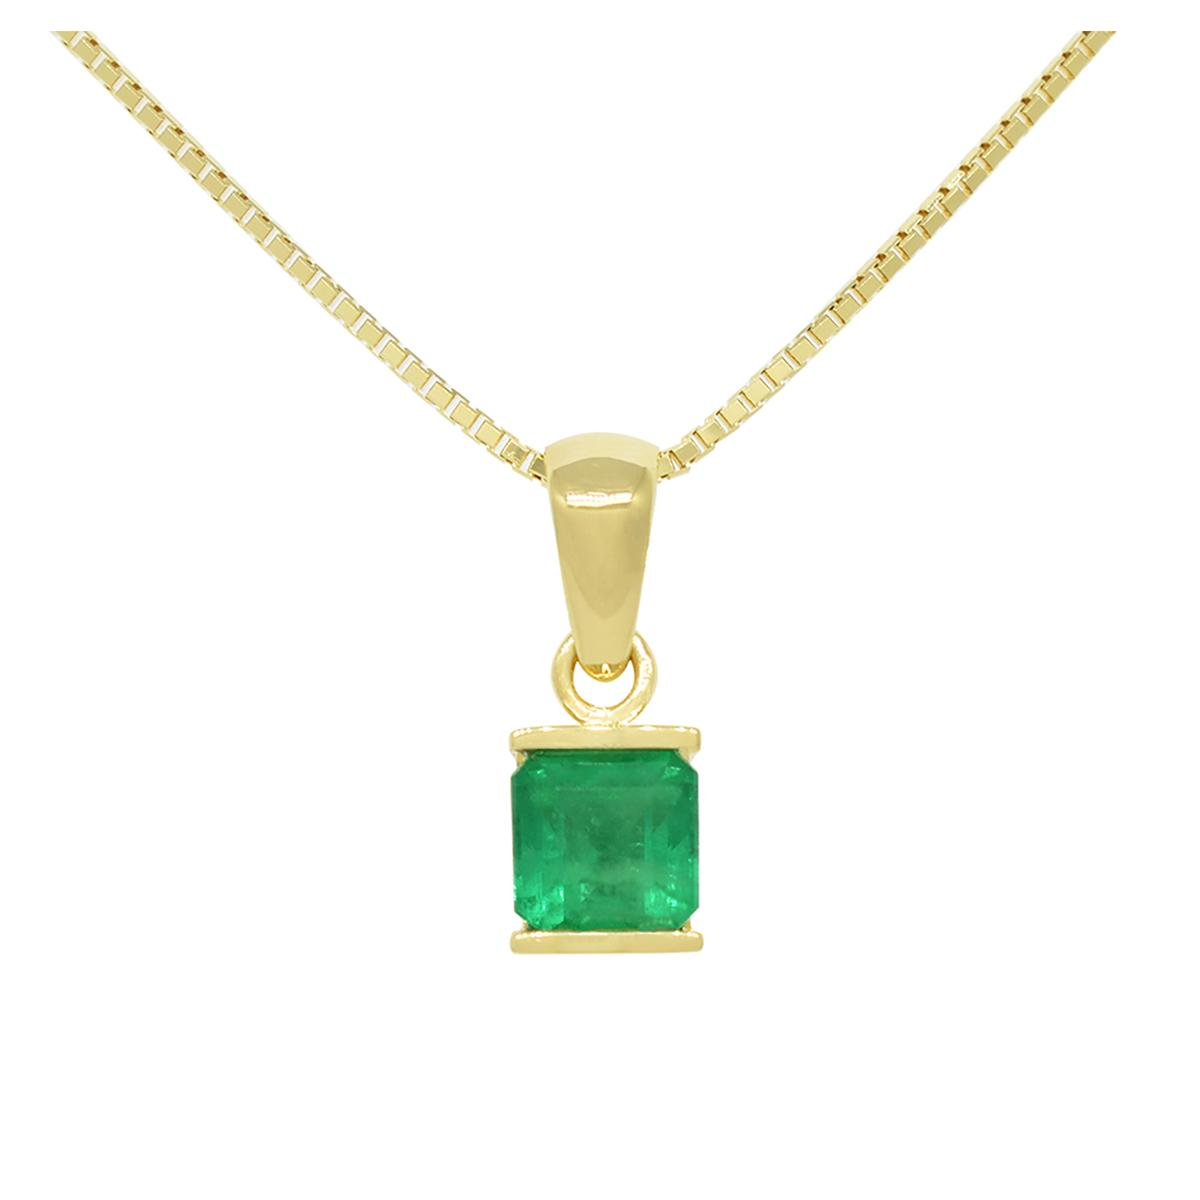 solitaire-emerald-pendant-in-18k-yellow-gold-tension-setting